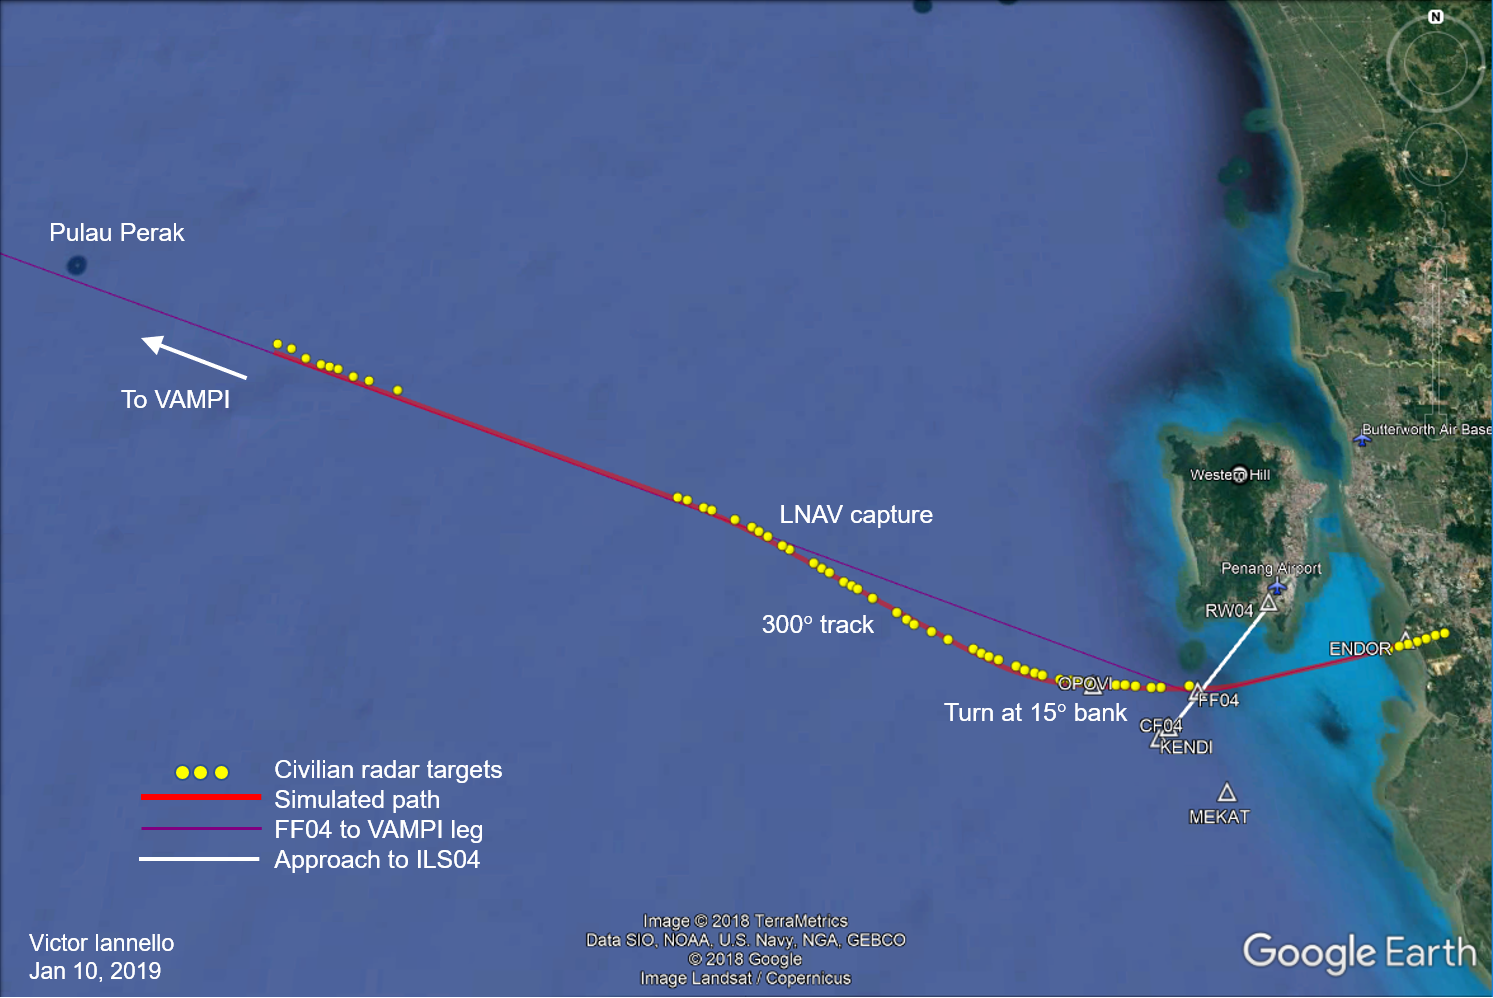 MH370 Flight Around Penang « The Disappearance of MH370 on